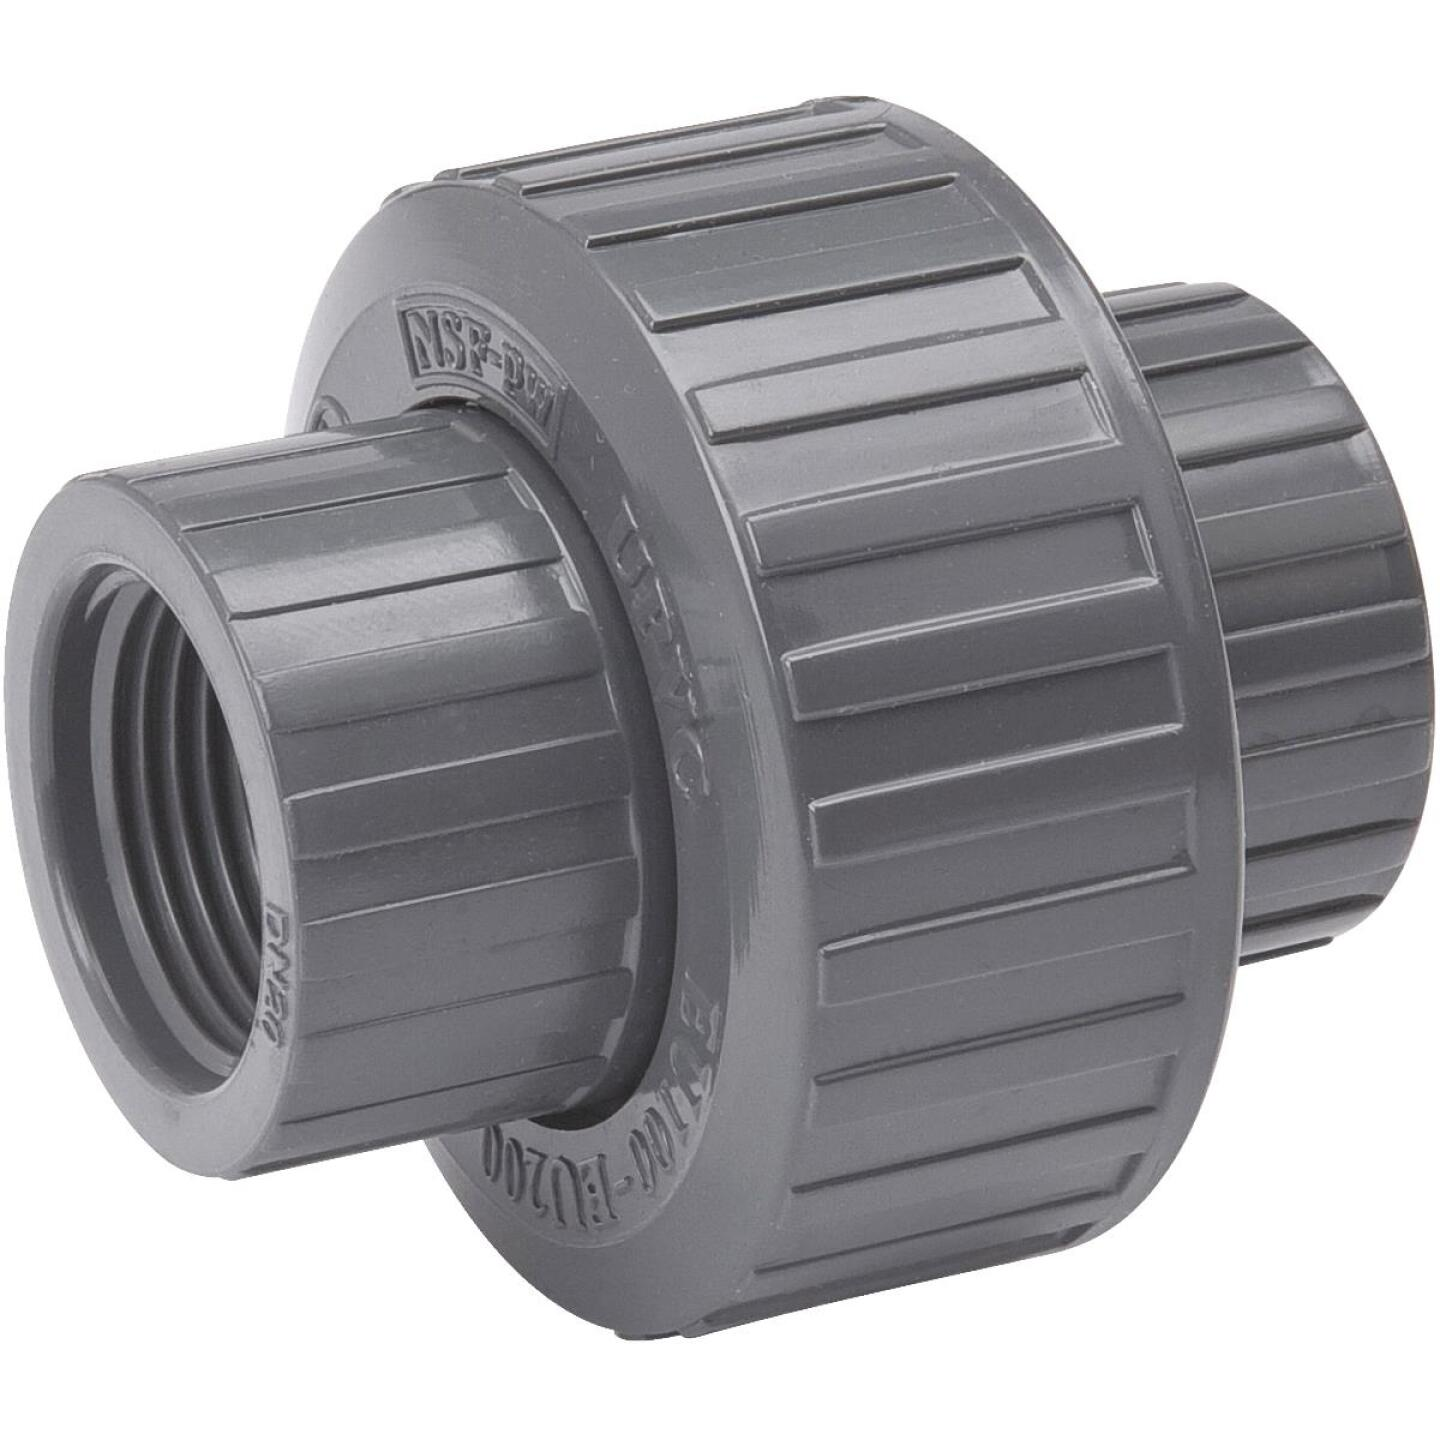 B&K 2 In. Threaded Schedule 80 PVC Union Image 1